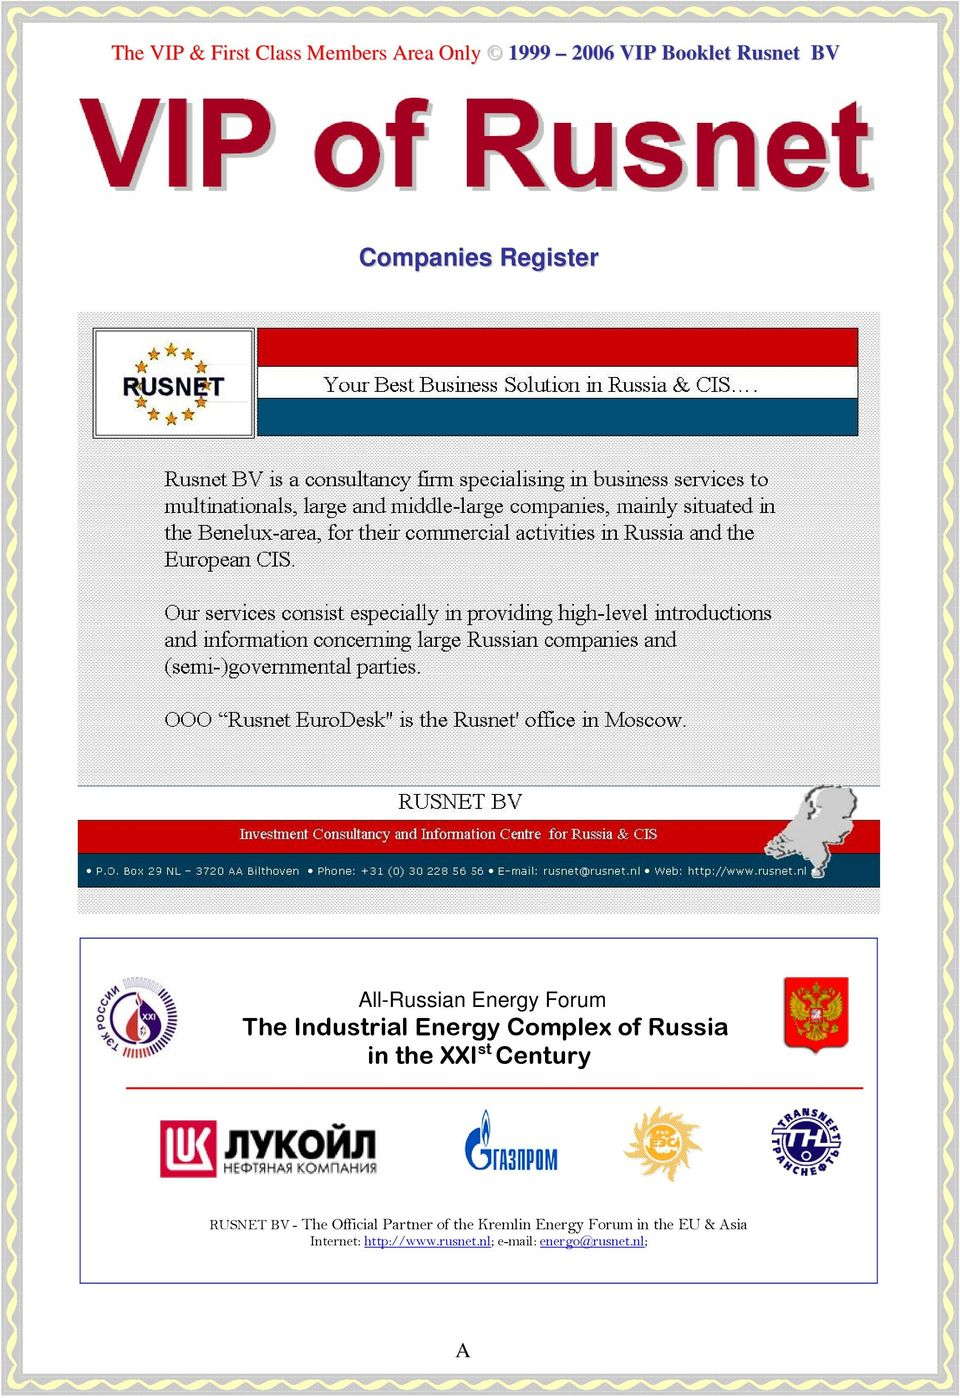 st Century RUSNET BV - The Official Partner of the Kremlin Energy Forum